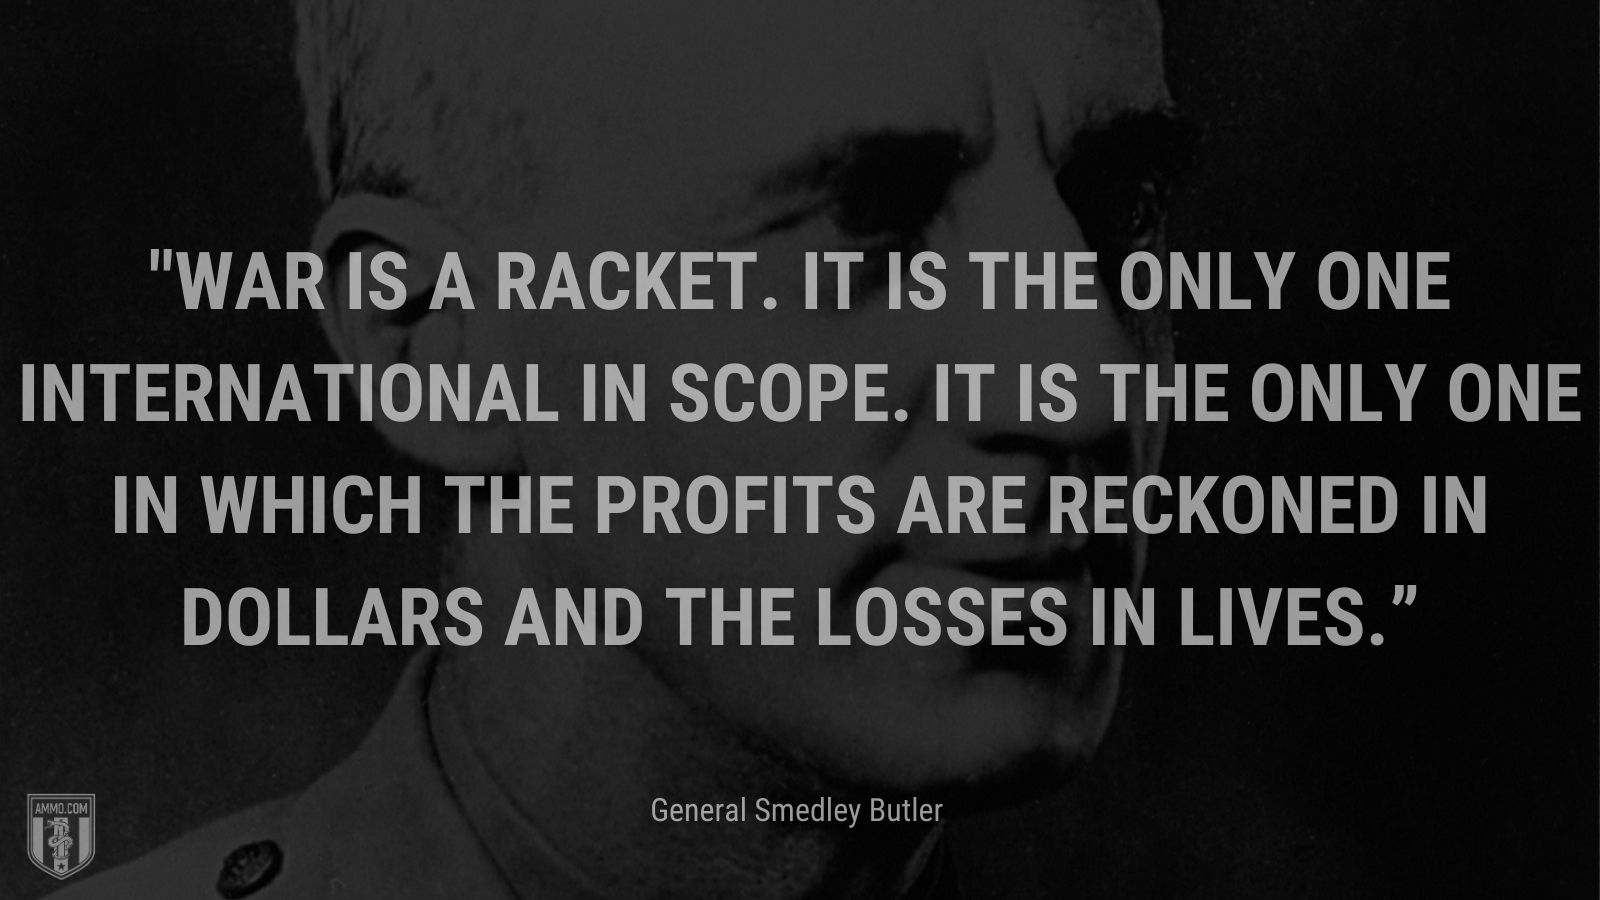 """""""War is a racket. It is the only one international in scope. It is the only one in which the profits are reckoned in dollars and the losses in lives."""" - General Smedley Butler"""